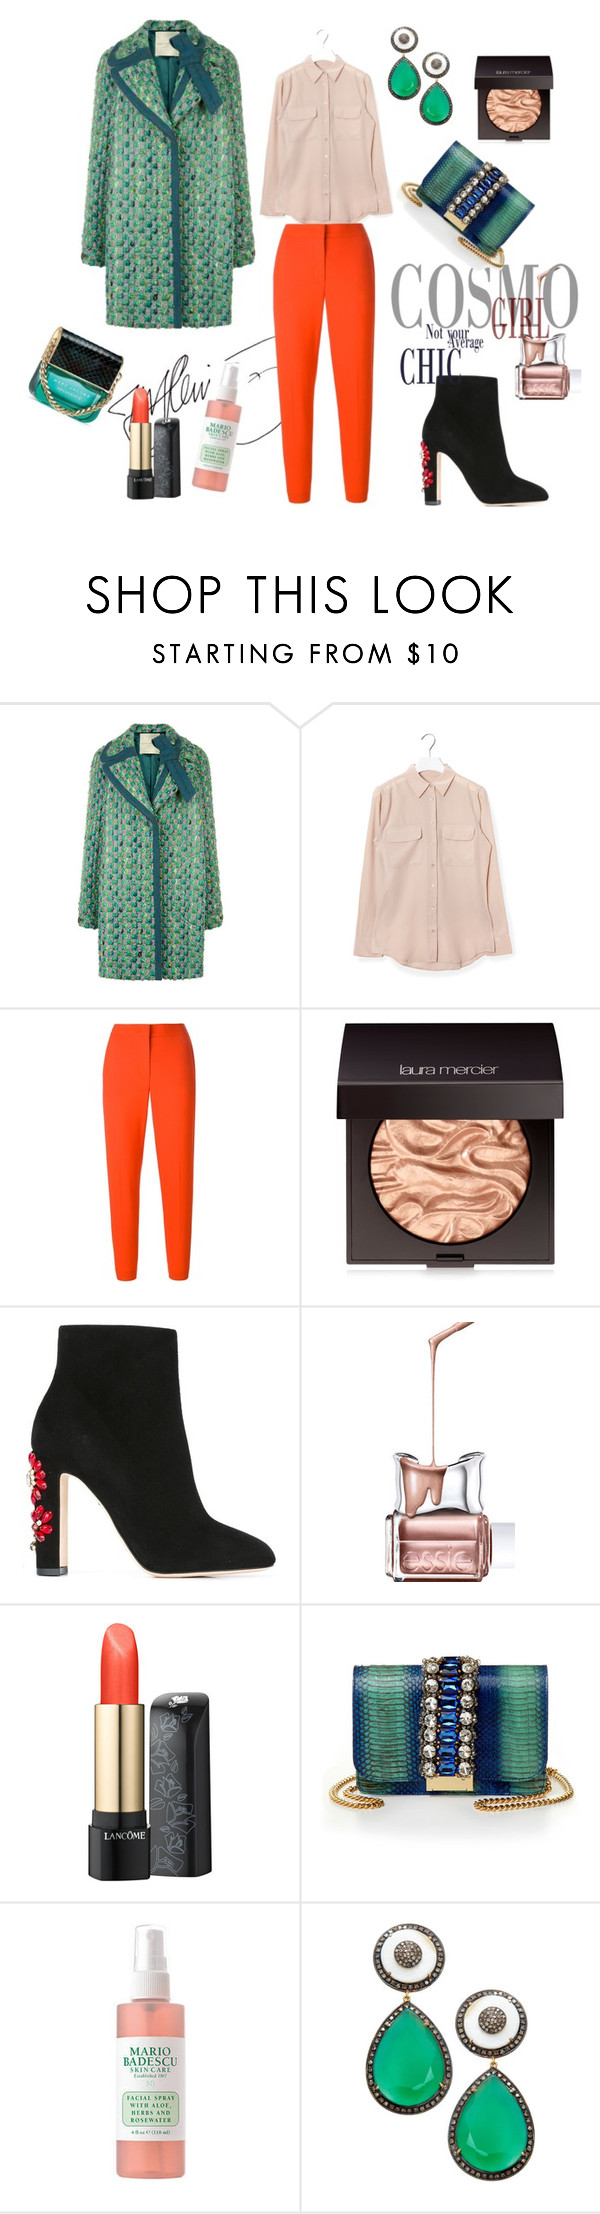 """""""Jade"""" by flowerdreamer ❤ liked on Polyvore featuring Marco de Vincenzo, Equipment, MSGM, Laura Mercier, Dolce&Gabbana, Essie, Lancôme, GEDEBE, Mario Badescu Skin Care and Jyoti"""